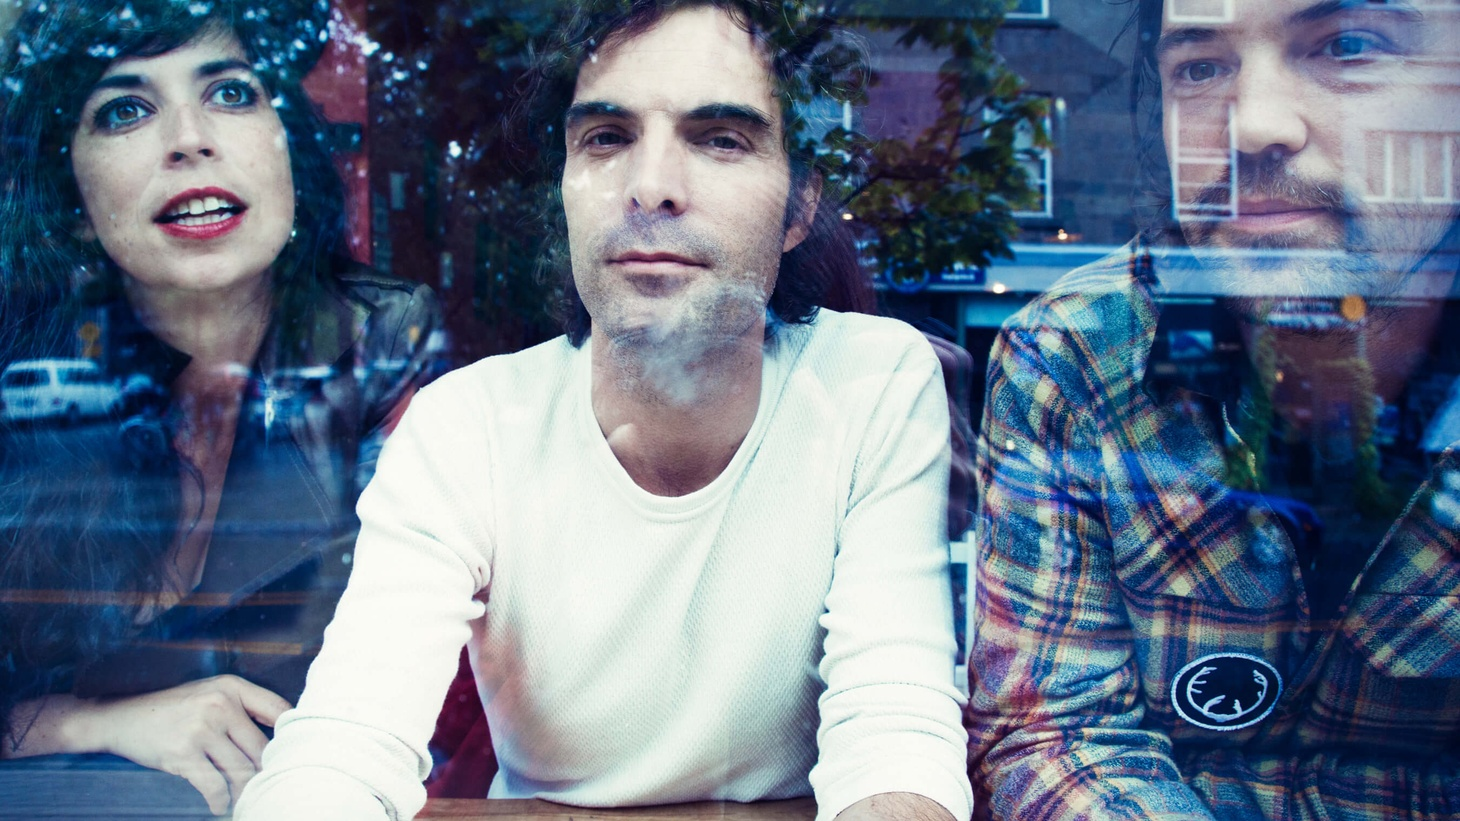 A band's third album can be crucial. But Montreal folk rockers The Barr Brothers -- led by siblings Brad and Andrew Barr -- up their game with a genre-defying album.